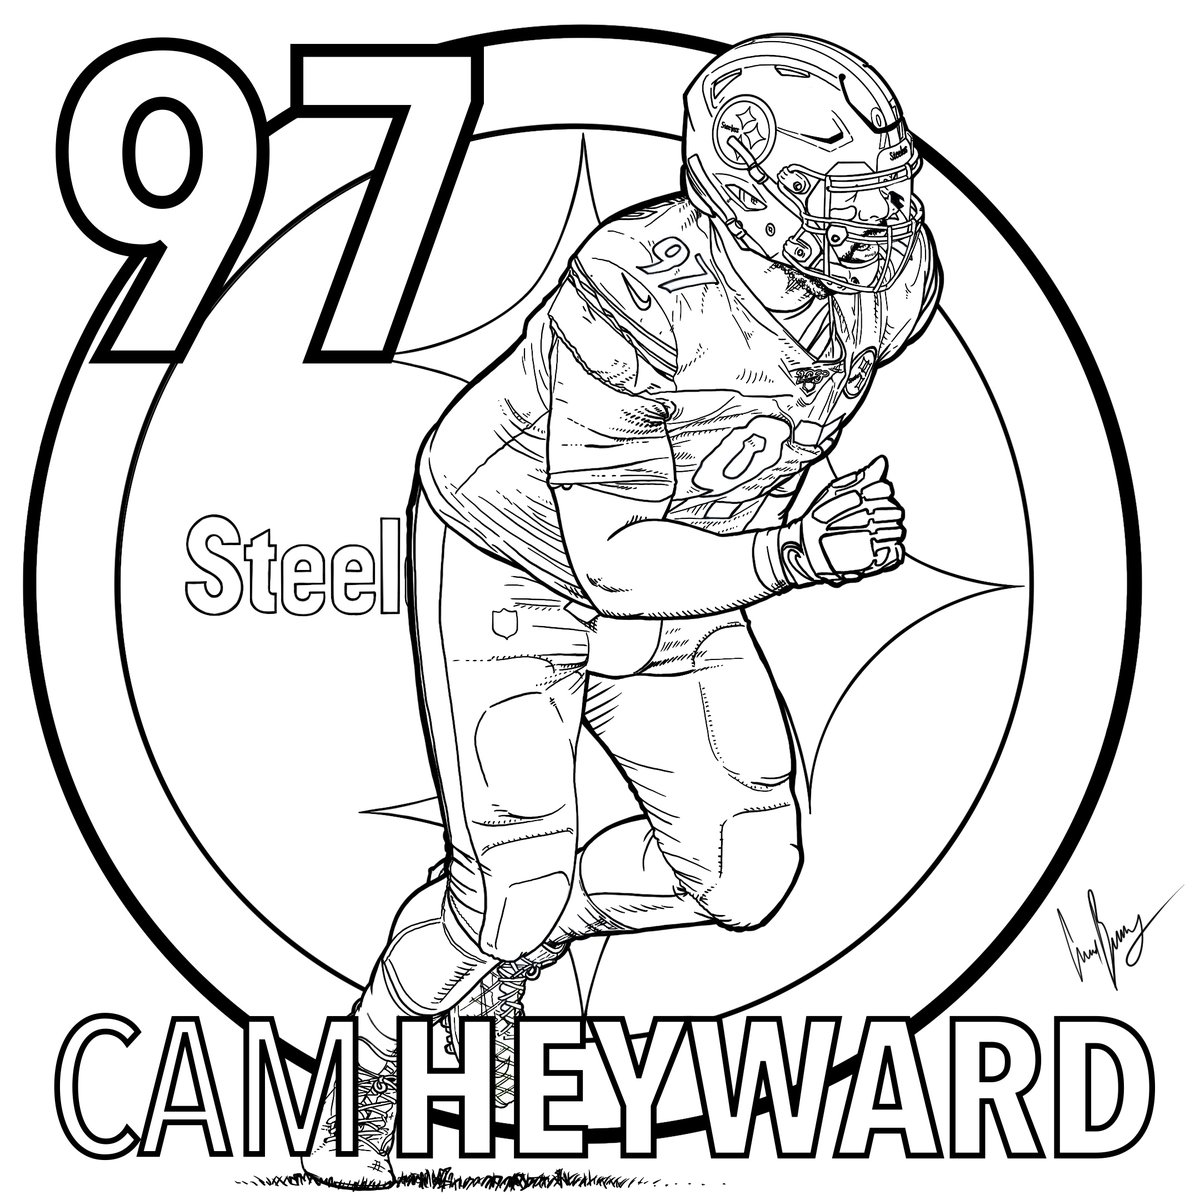 Pittsburgh Steelers On Twitter It S Nationalcrayonday Seems Like A Perfect Day To Give Steelersnation Some Coloring Pages 1 Print 2 Color 3 Tweet Us Your Completed Coloring Page Download Steelers Coloring